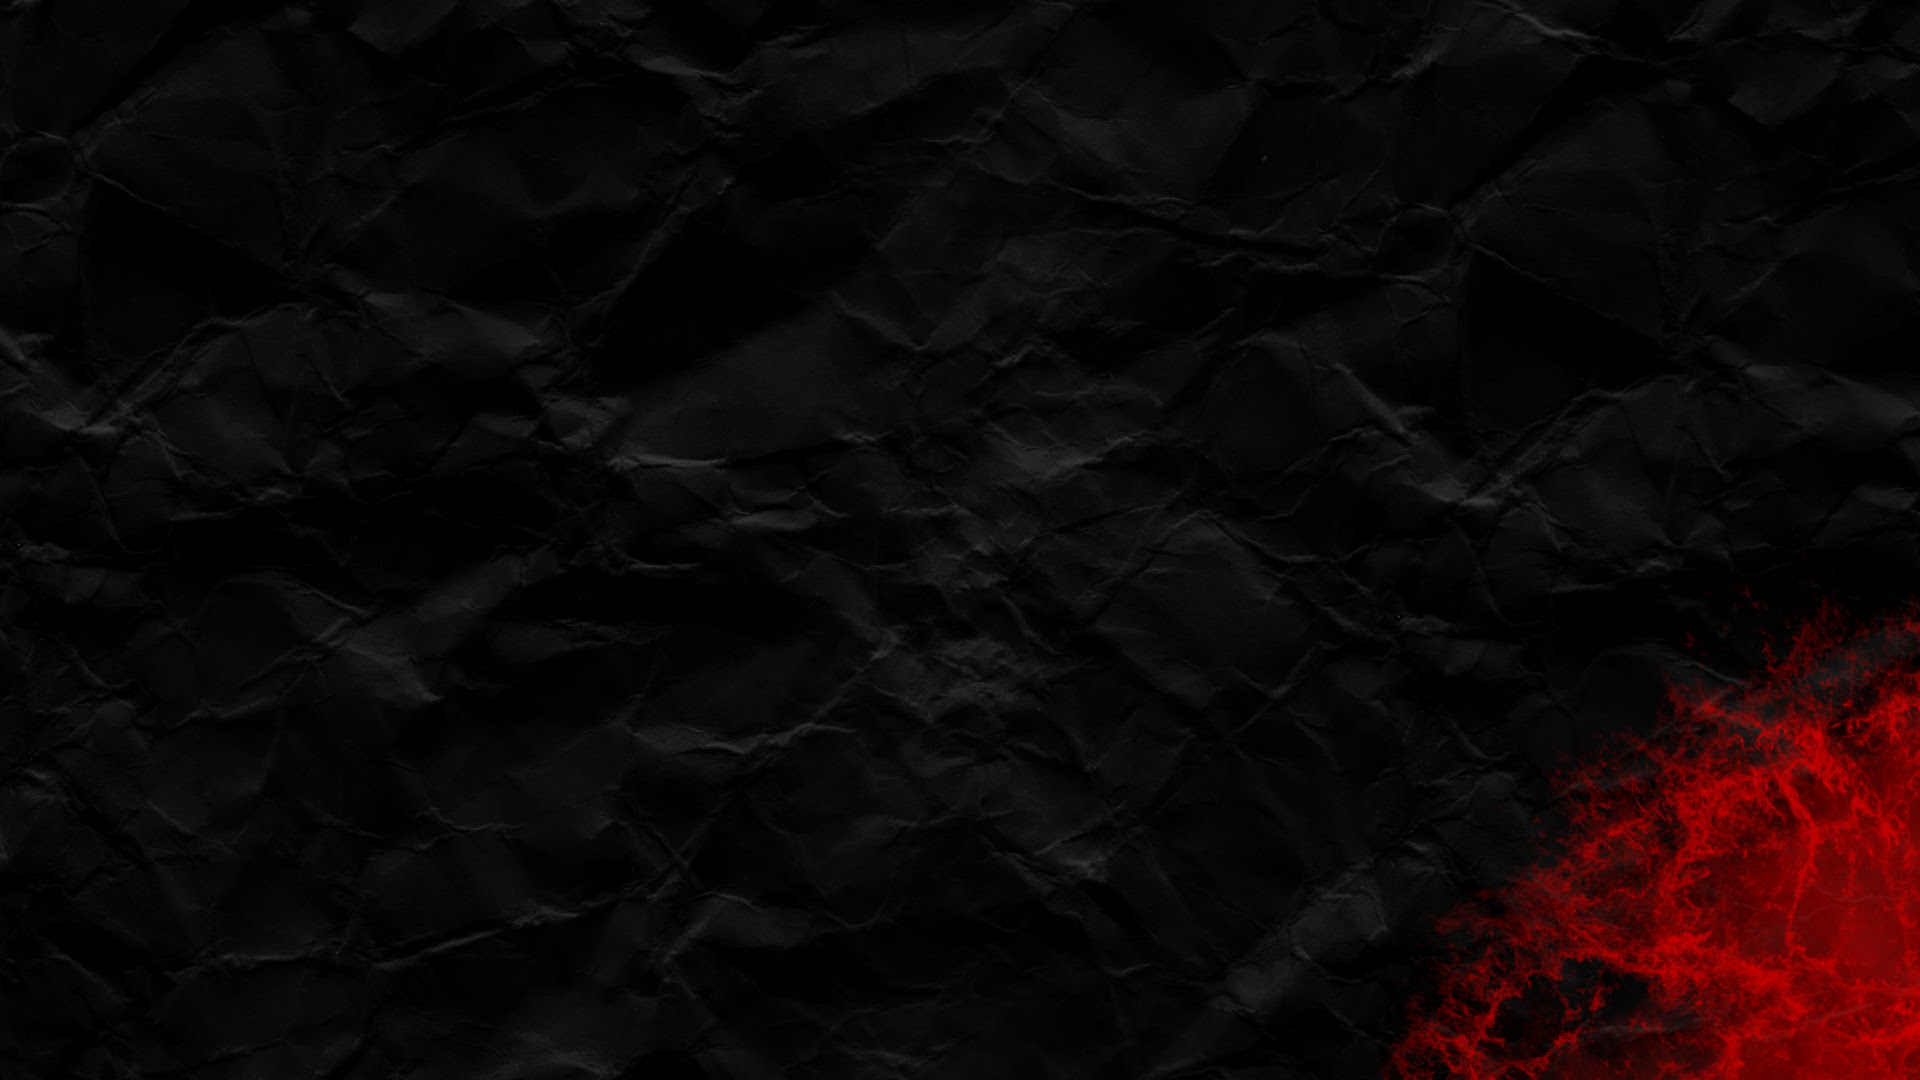 Red and Black 4K Wallpaper (53+ images)